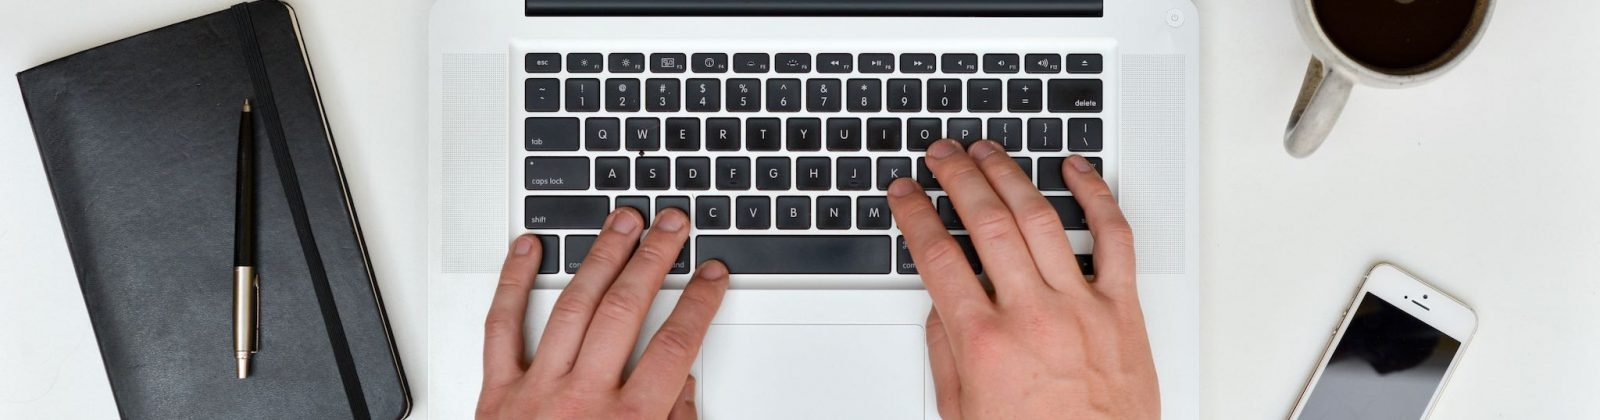 typing on Apple Macbook